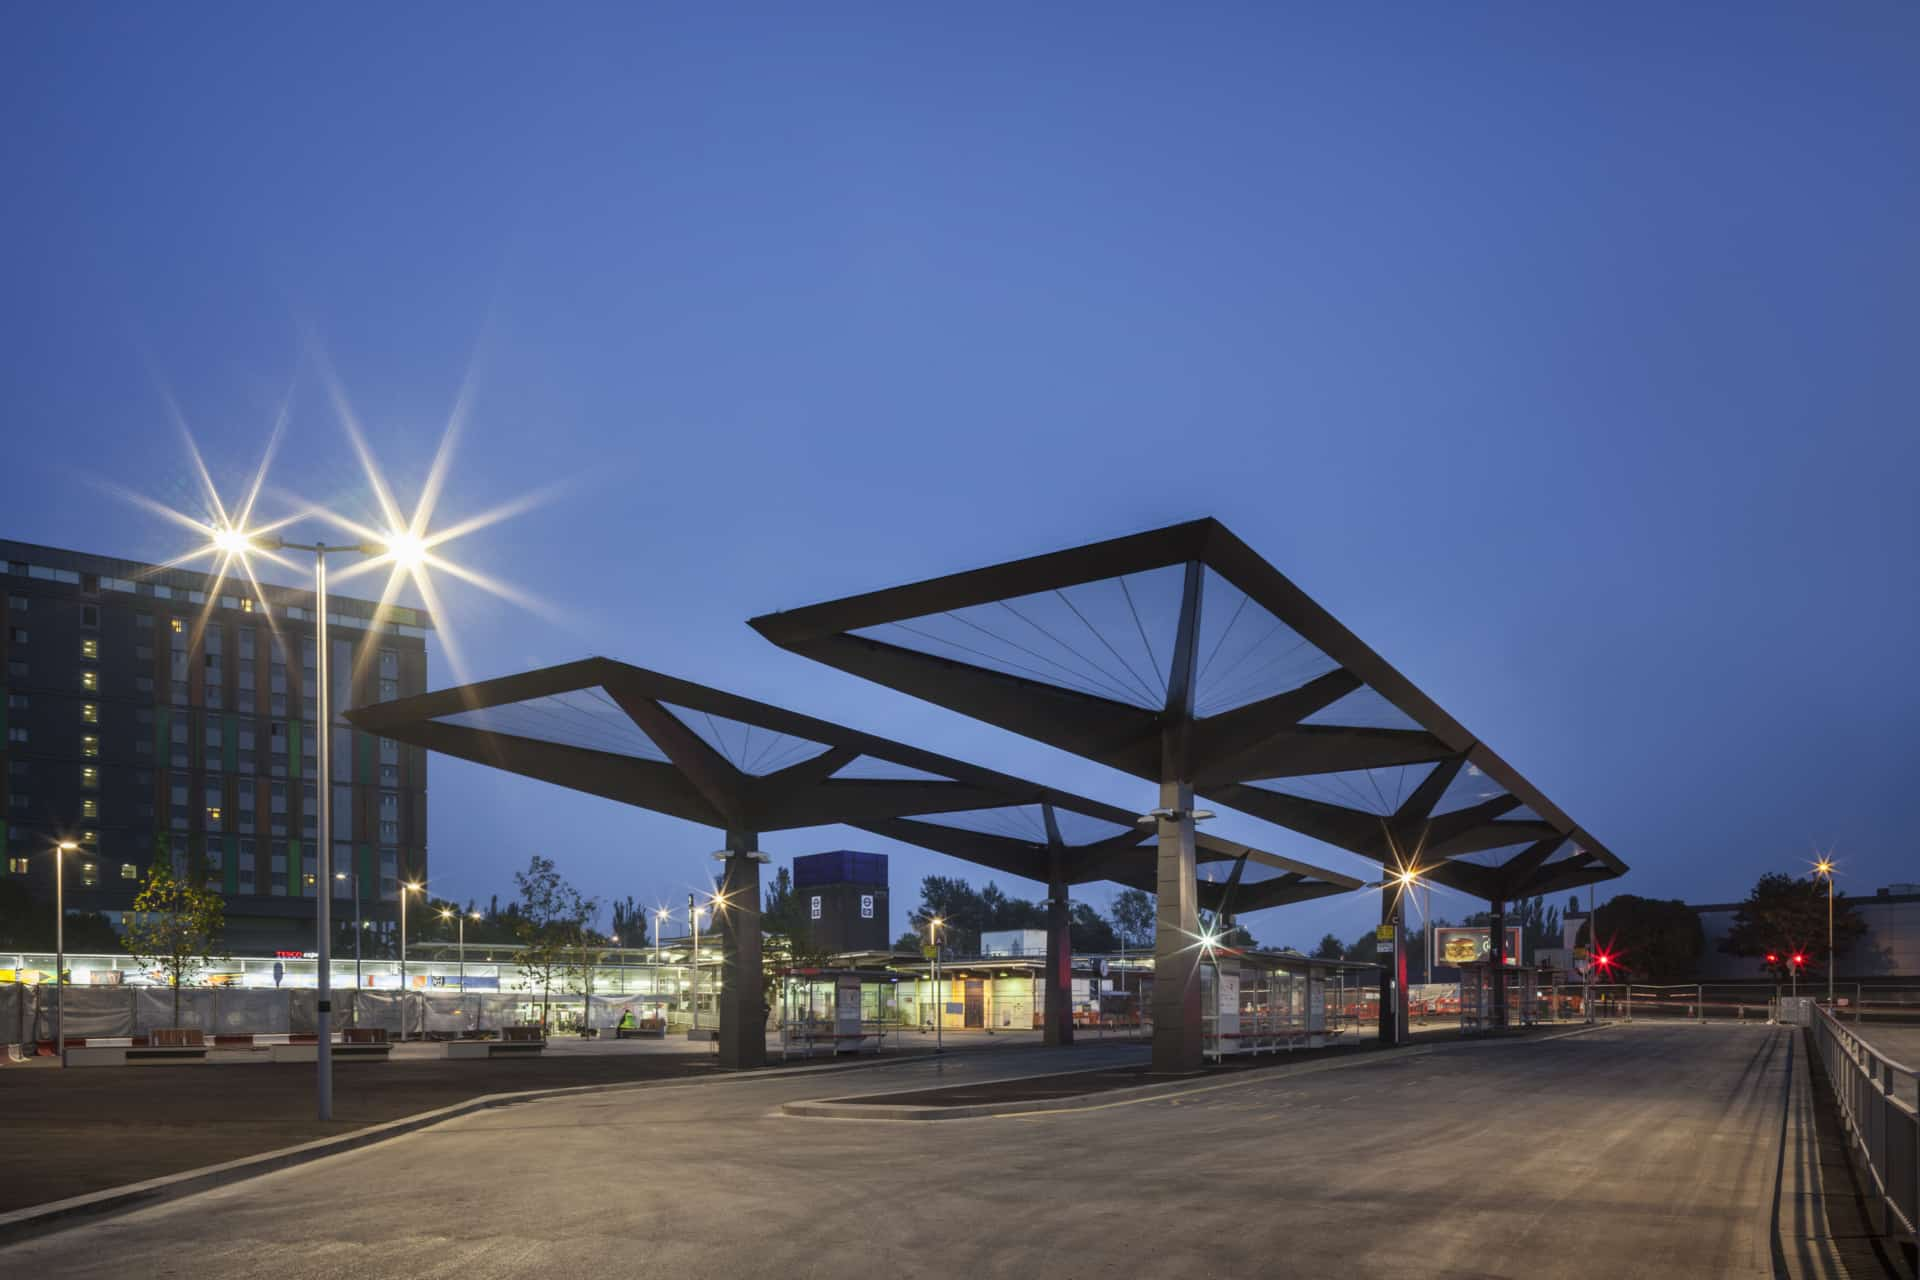 Tottenham Hale bus station features six stunning Texlon® ETFE canopies that seamlessly combines aesthetics, design and functionality.